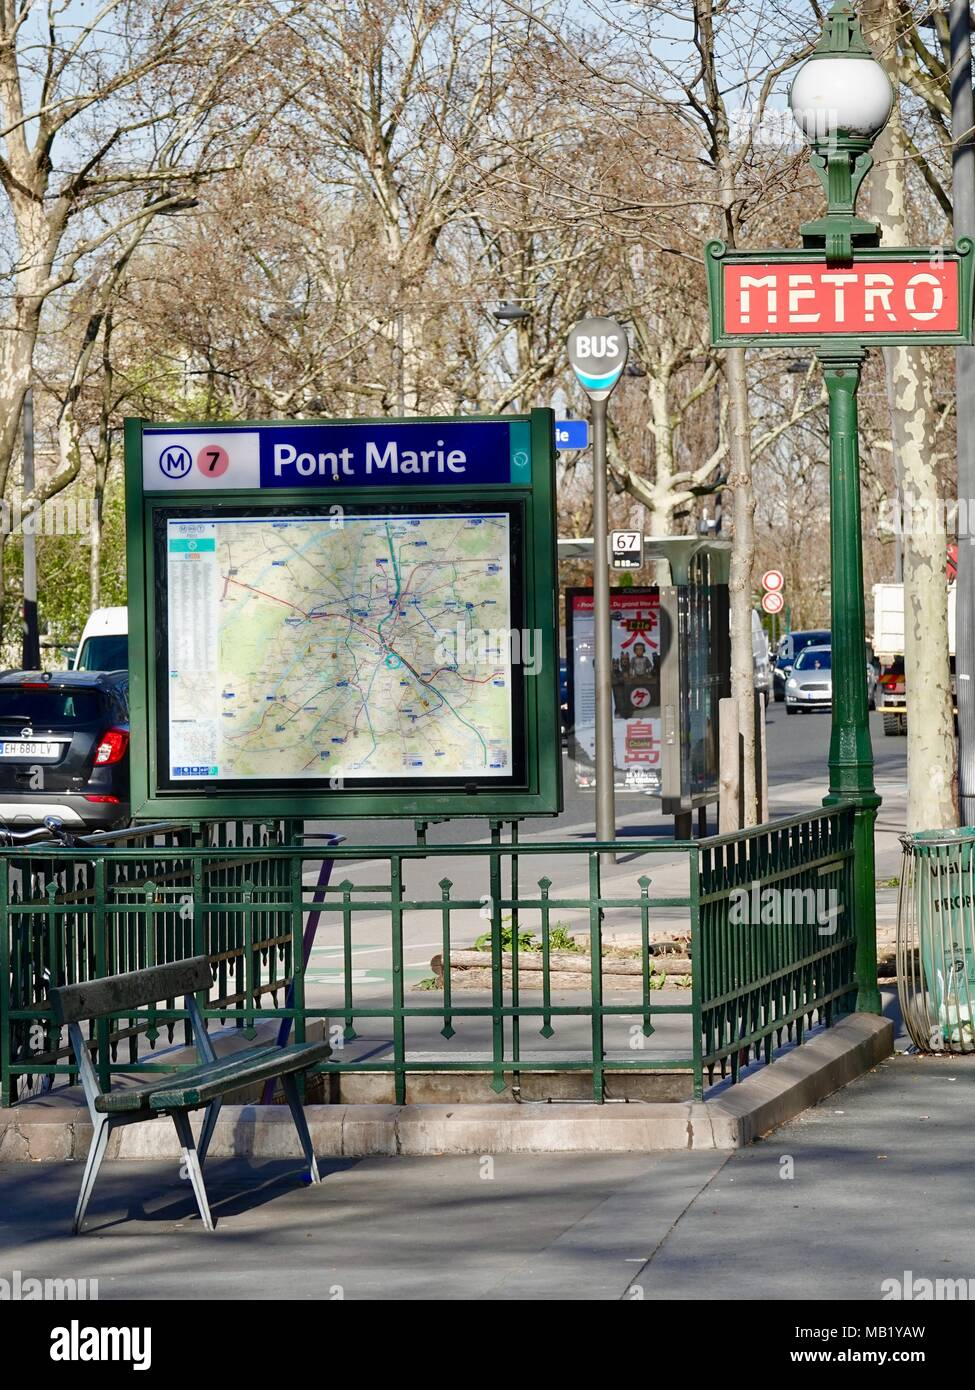 Pont Marie Métro entrance with Metro sign and transportation map. Paris, France - Stock Image